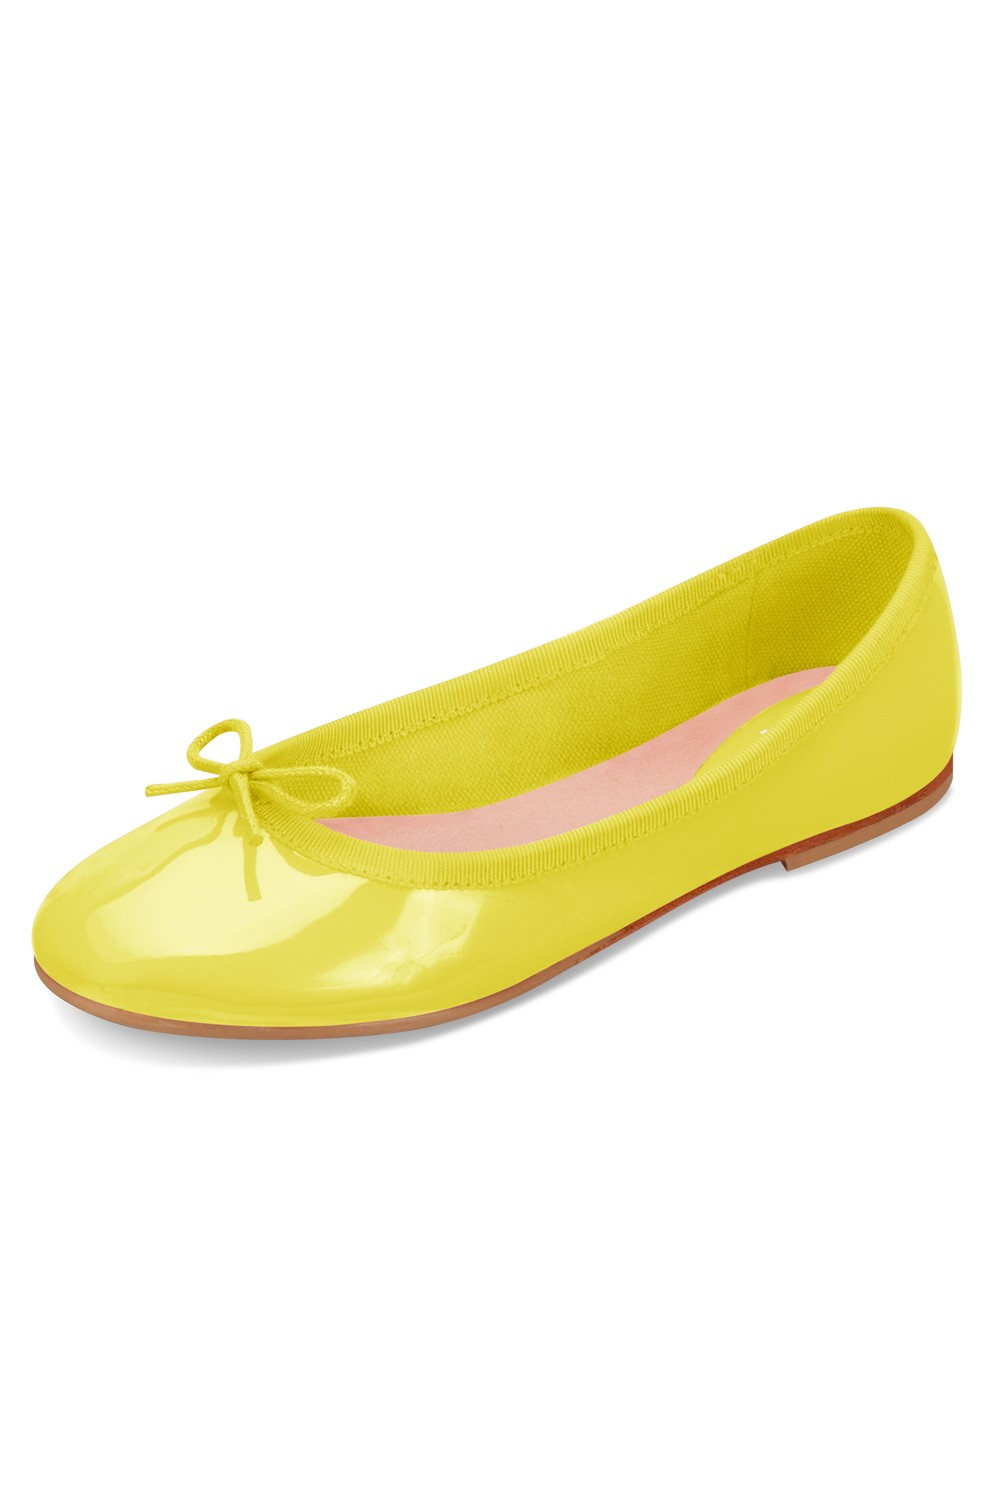 Girls Parakeet Cha Cha Flat Shoes Girls Fashion Shoes